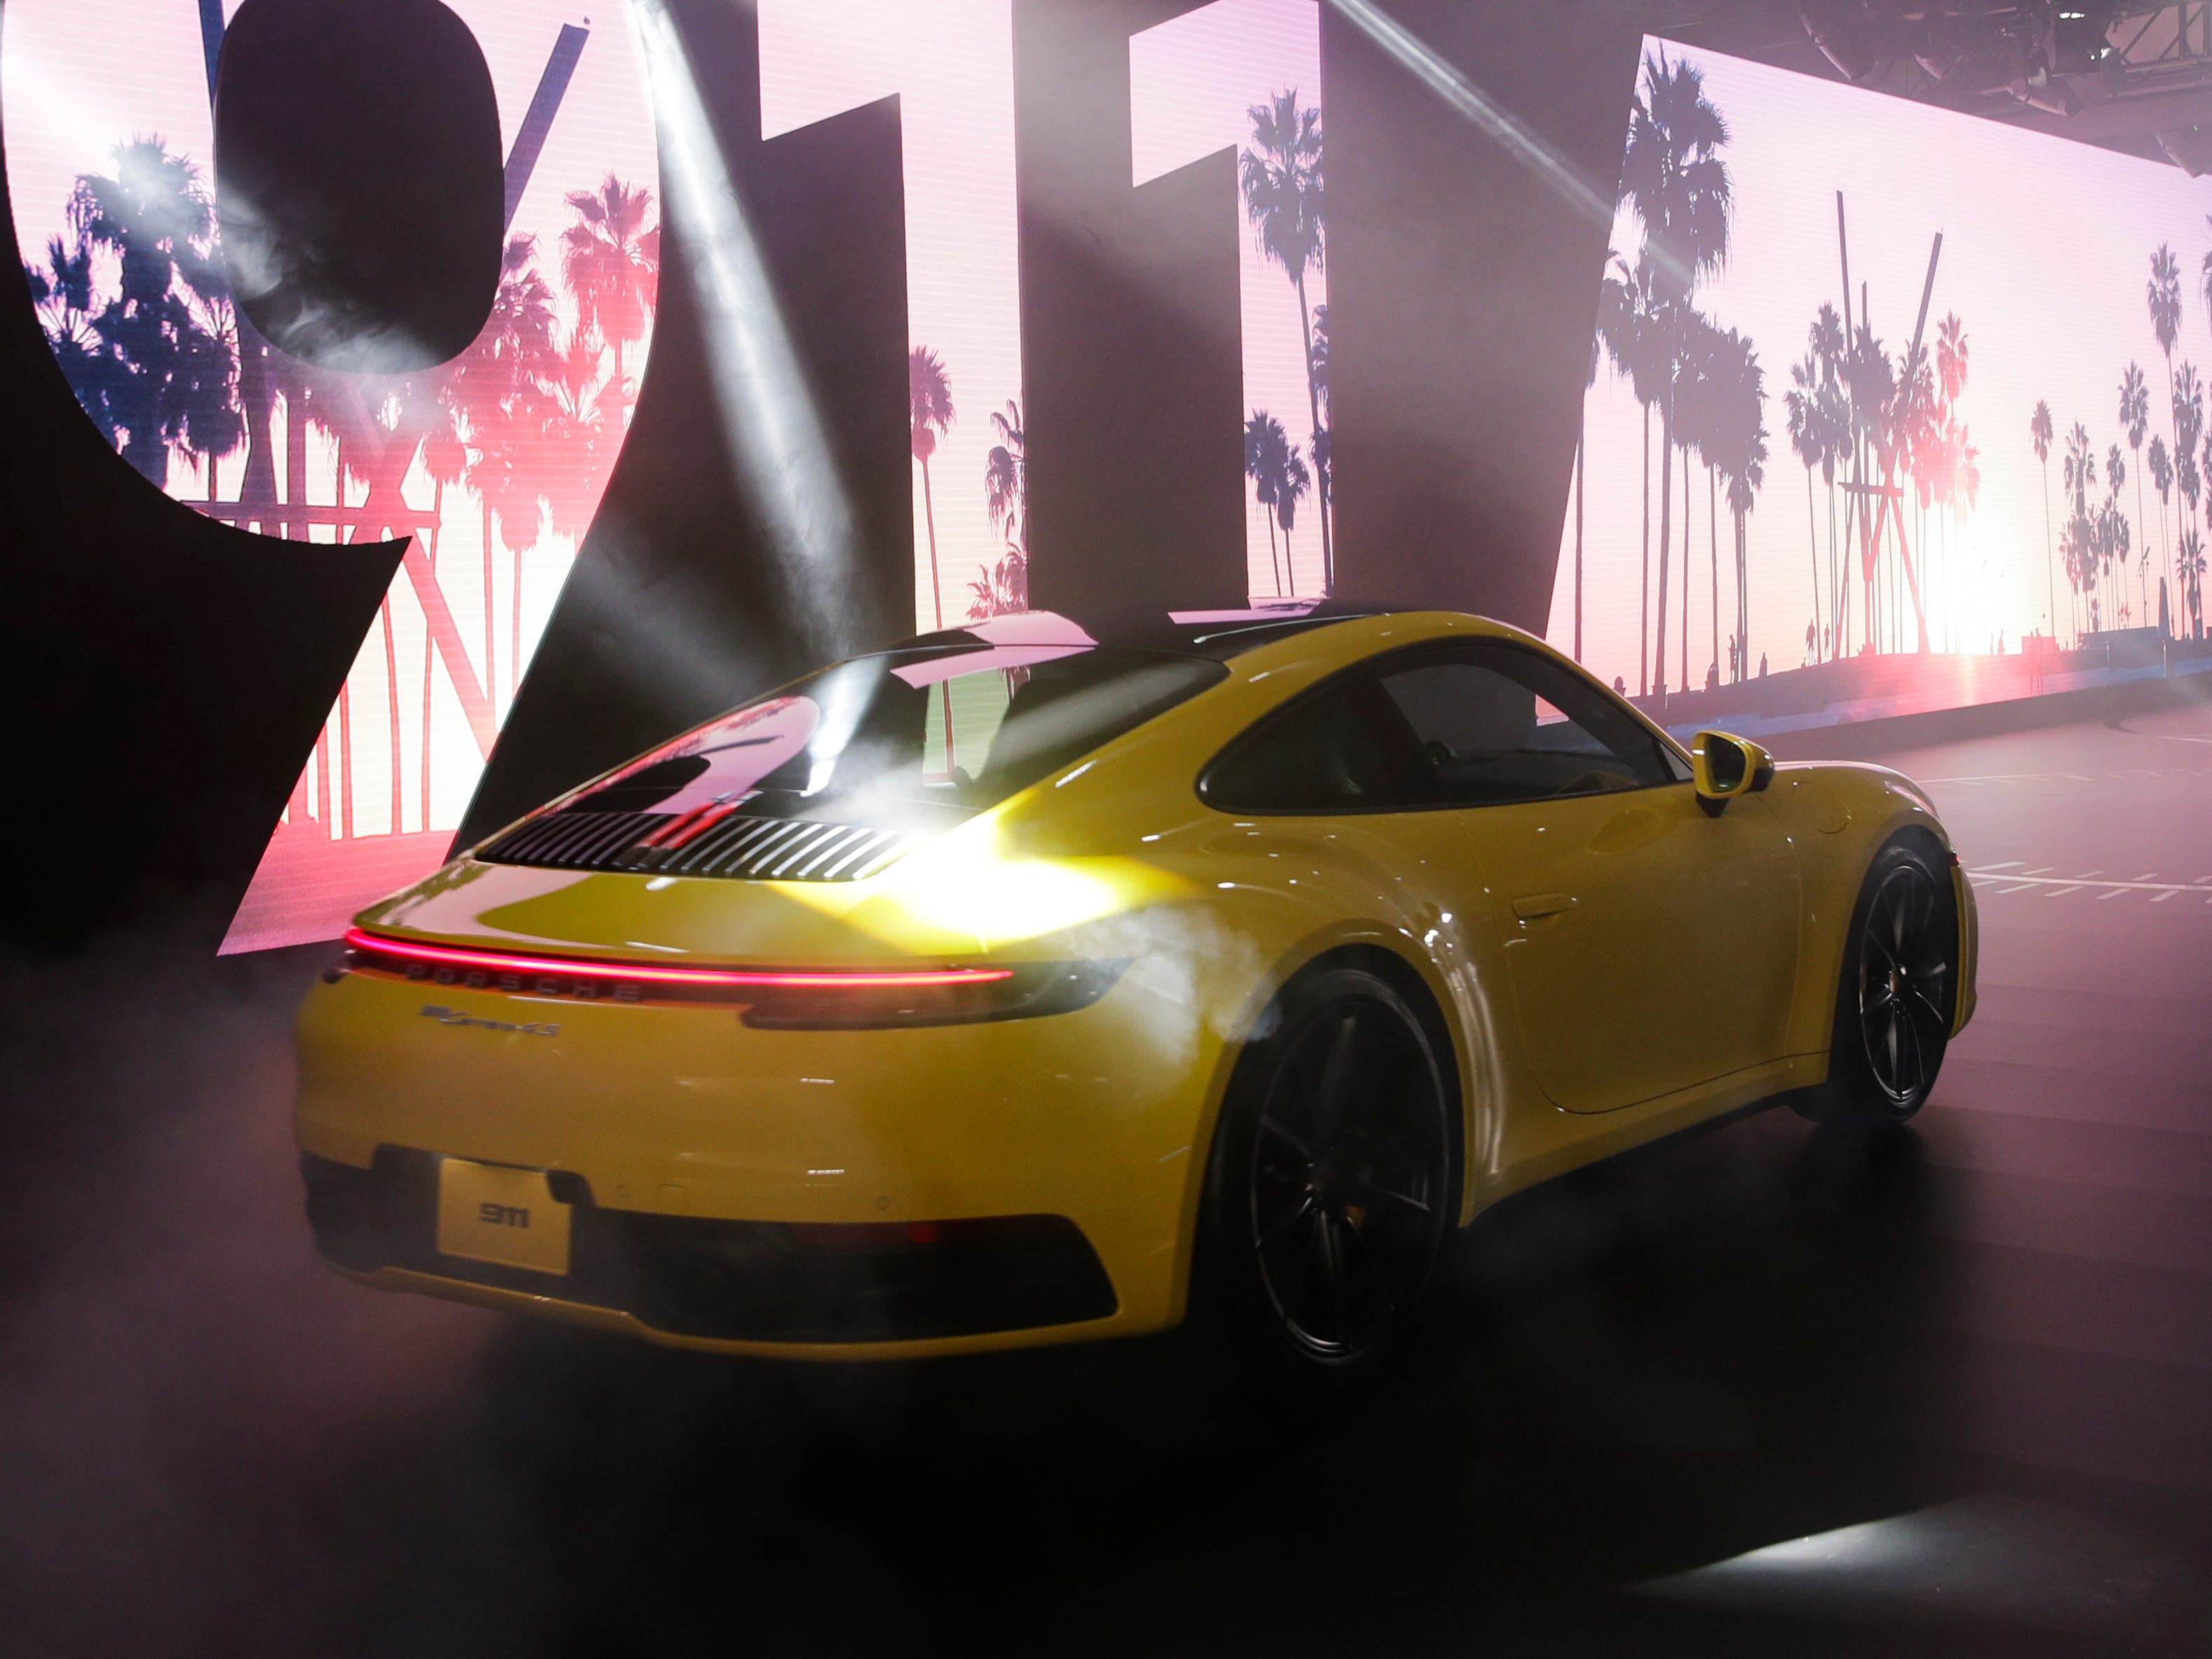 The 2020 Porsche 911 is unveiled at the Los Angeles Auto Show Wednesday, Nov. 28, 2018, in Los Angeles.